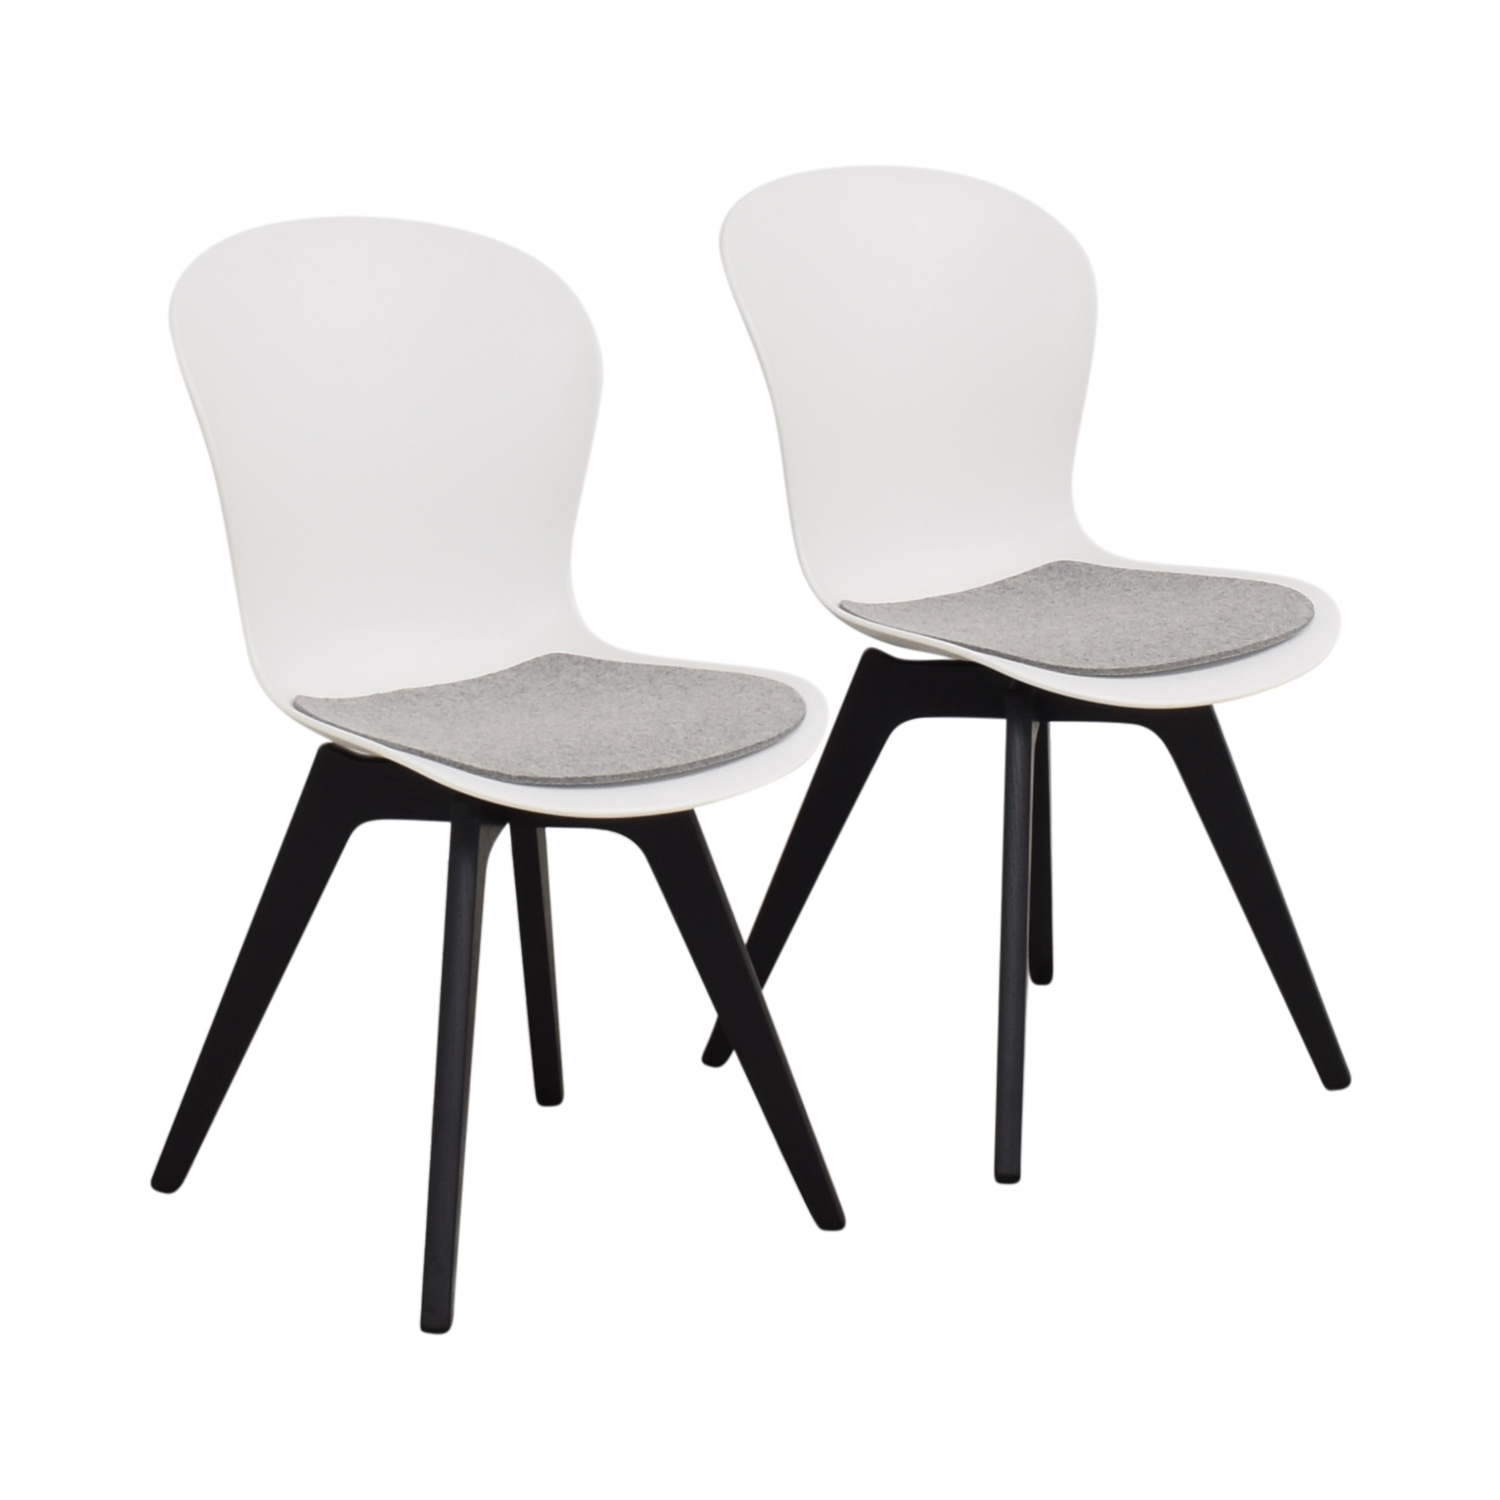 BoConcept BoConcept Adelaide Chairs with Morgan Seat Cushions ct